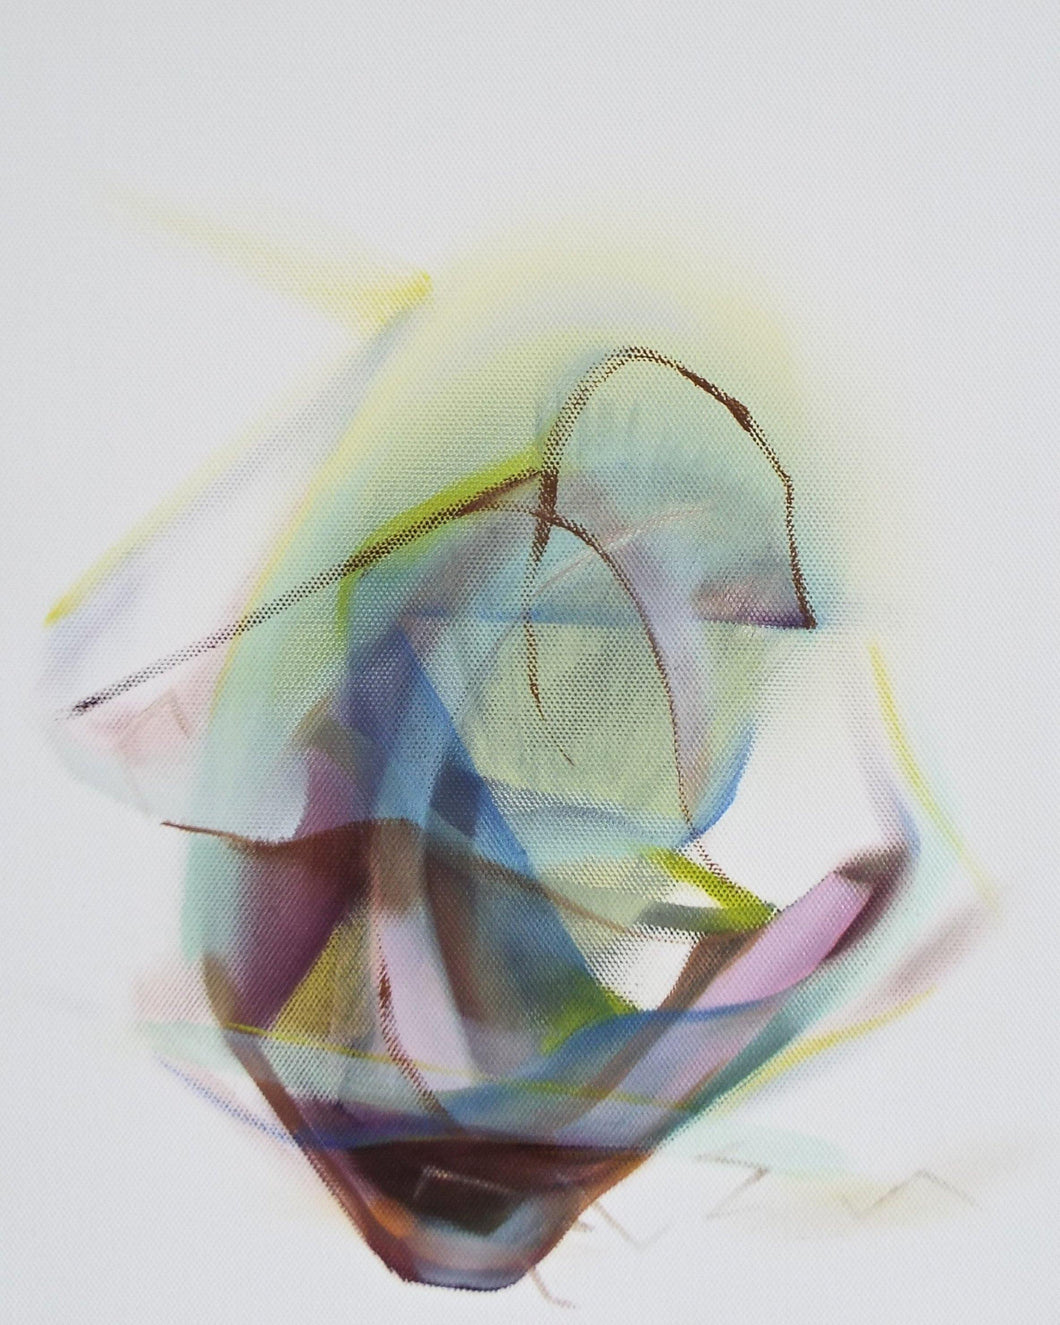 Crystal by Naomi Yuki, Painting at Art Acacia Gallery & Advisory